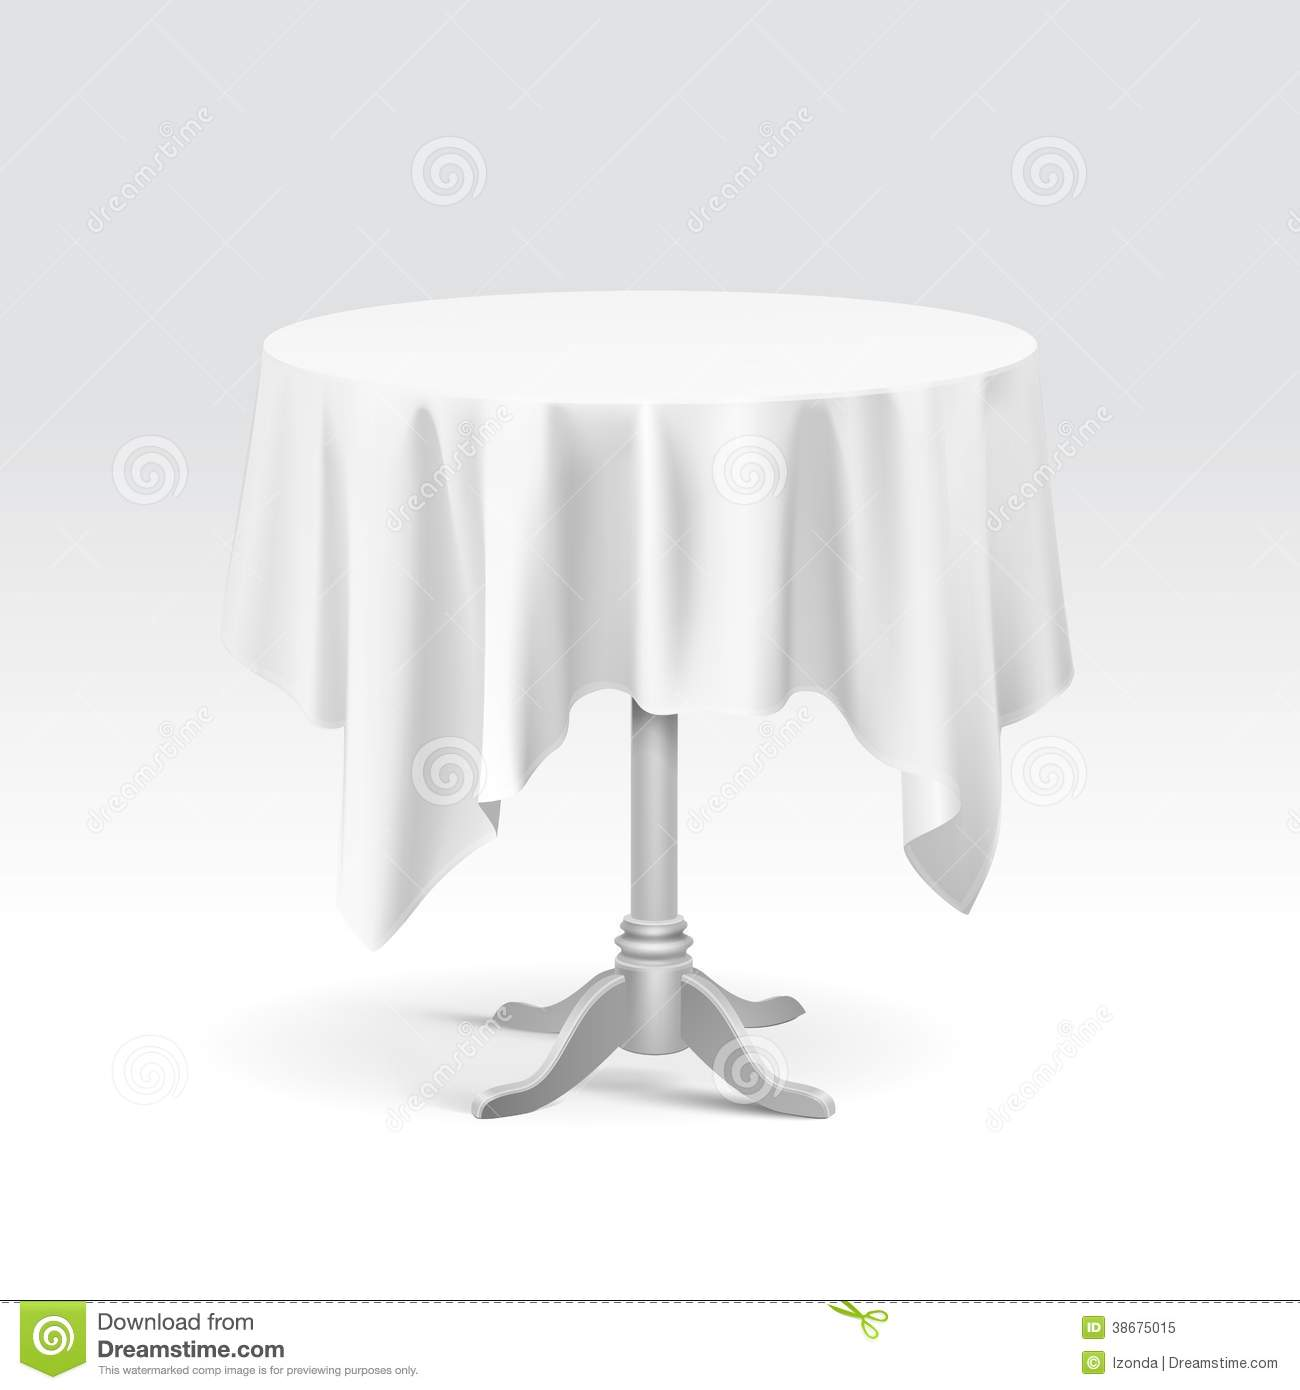 Table Cloth For Round Table Empty Round Table And Tablecloth On A White Background Stock Image